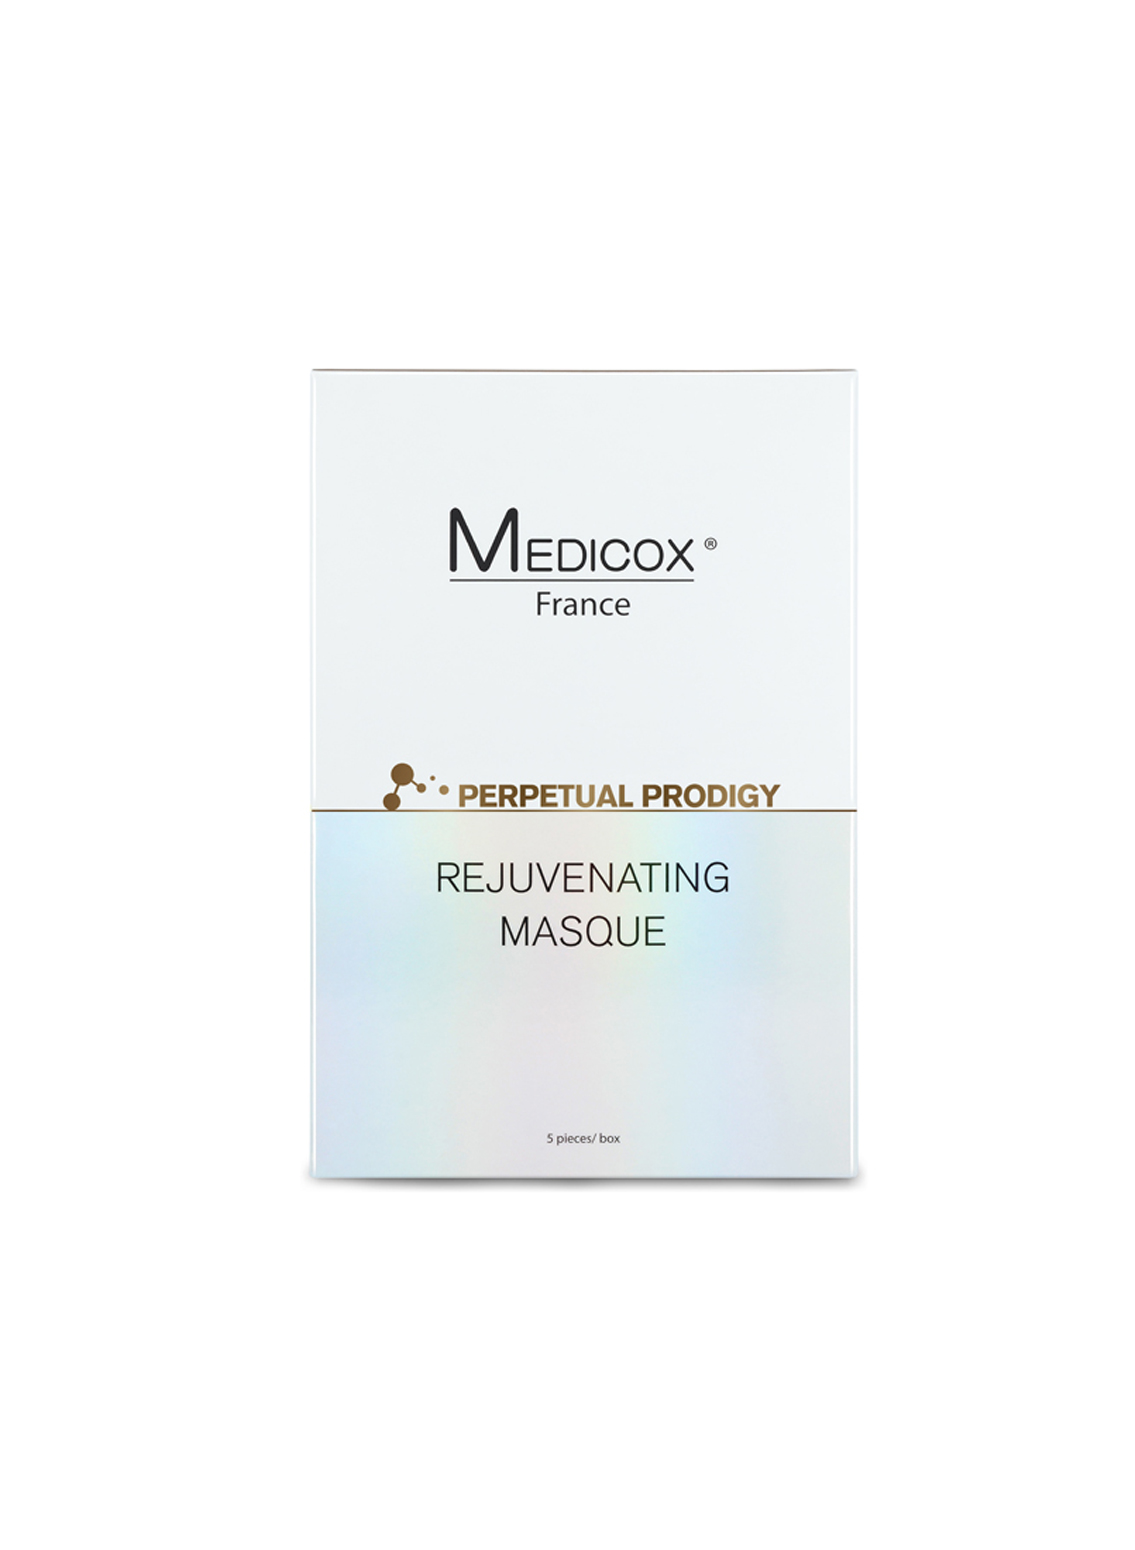 Perpetual Prodigy Rejuvenating Masque